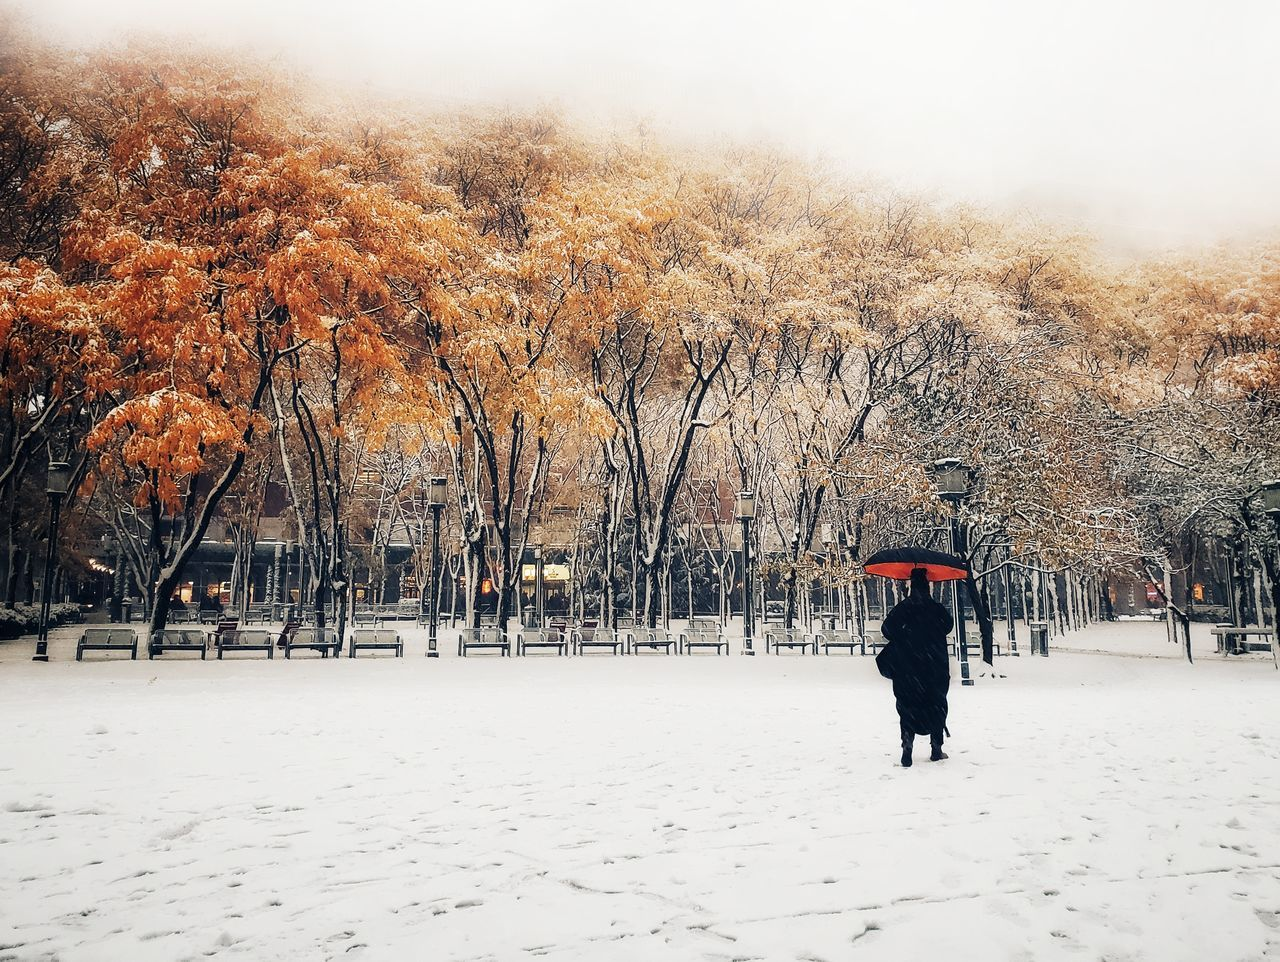 cold temperature, snow, winter, tree, plant, nature, warm clothing, covering, beauty in nature, day, clothing, real people, one person, lifestyles, change, rear view, land, field, white color, outdoors, extreme weather